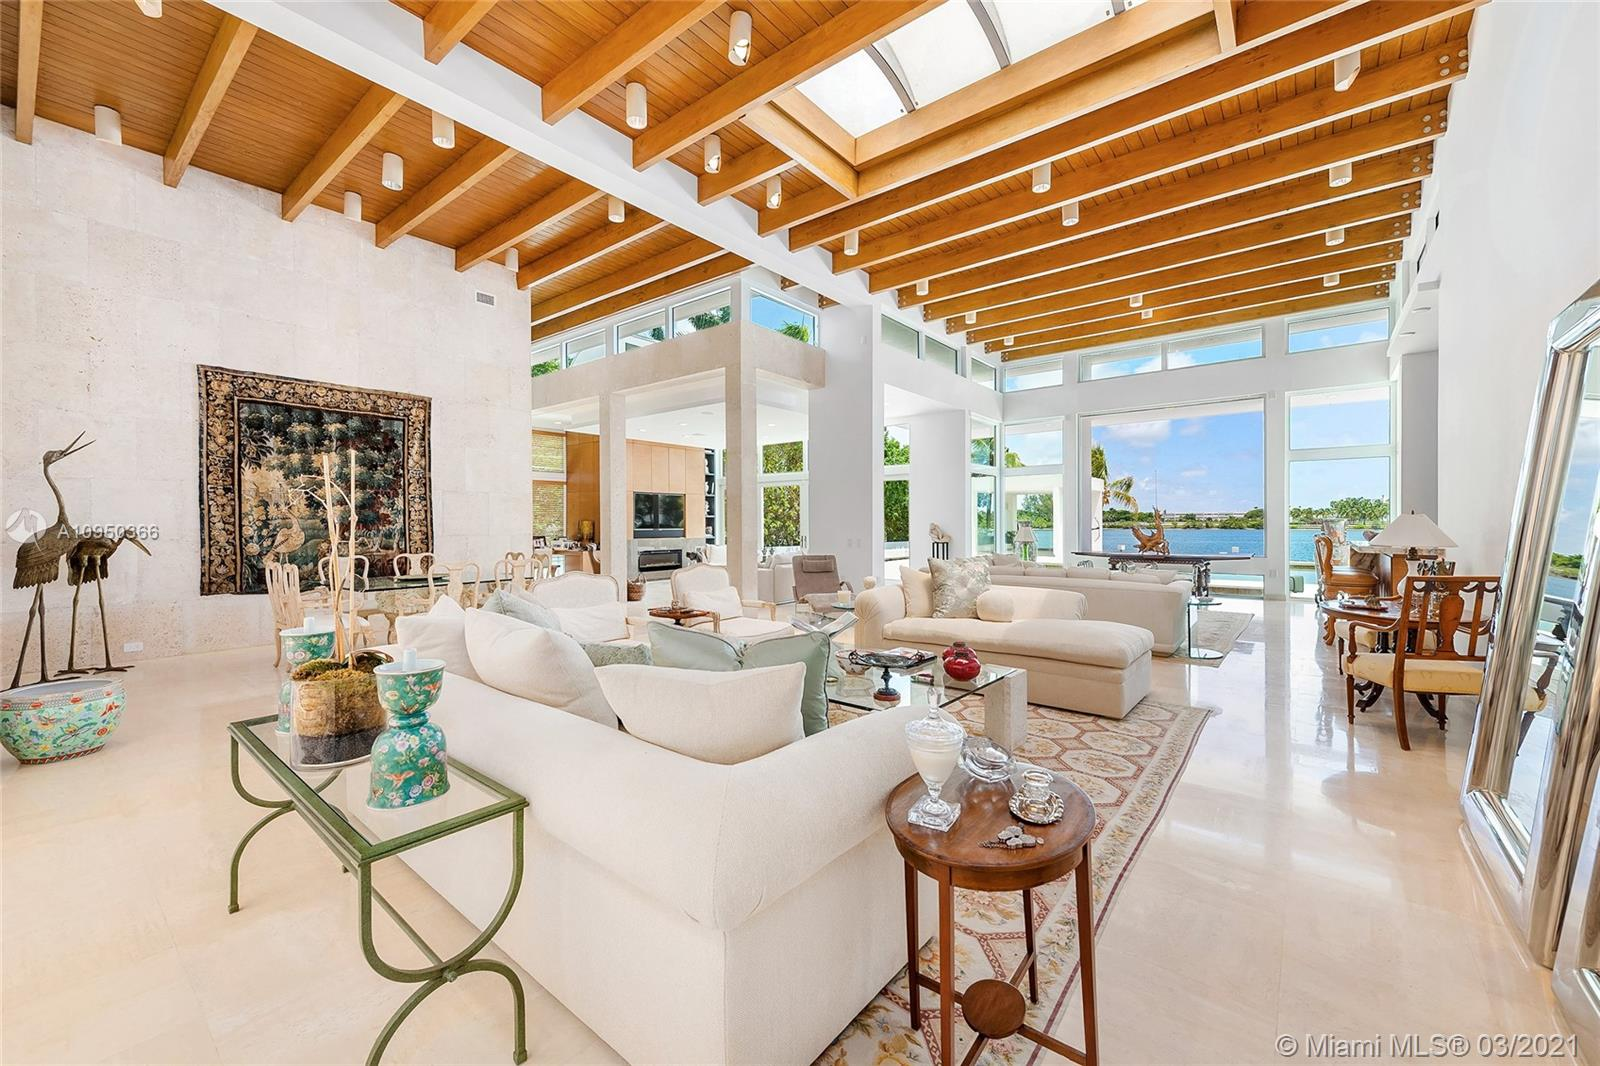 This contemporary bi-Level waterfront home sits on a 25,804 SF lot in guarded Sunset Island I. The 6BR/6+2BA split floor plan home features marble floors, amazing architectural design, custom walls & built-ins, soaring wood-beamed ceilings, skylights & large windows to enjoy true indoor/outdoor living. Amazing extended living room w/custom bar, open dining & family room w/fireplace all w/views to the pool & bay. Gym, office & temp/controlled wine room. Gourmet eat-in kitchen w/top-of-the-line Thermador & Sub-Zero appliances, butler's pantry & separate breakfast area. The sumptuous principal suite features a seating area, voluminous dual walk-in closets & Carrara marble bathroom w/dual walk-in showers & spa tub. Large pool w/fountain, covered seating area, 97'WF, direct Bay & Ocean access.